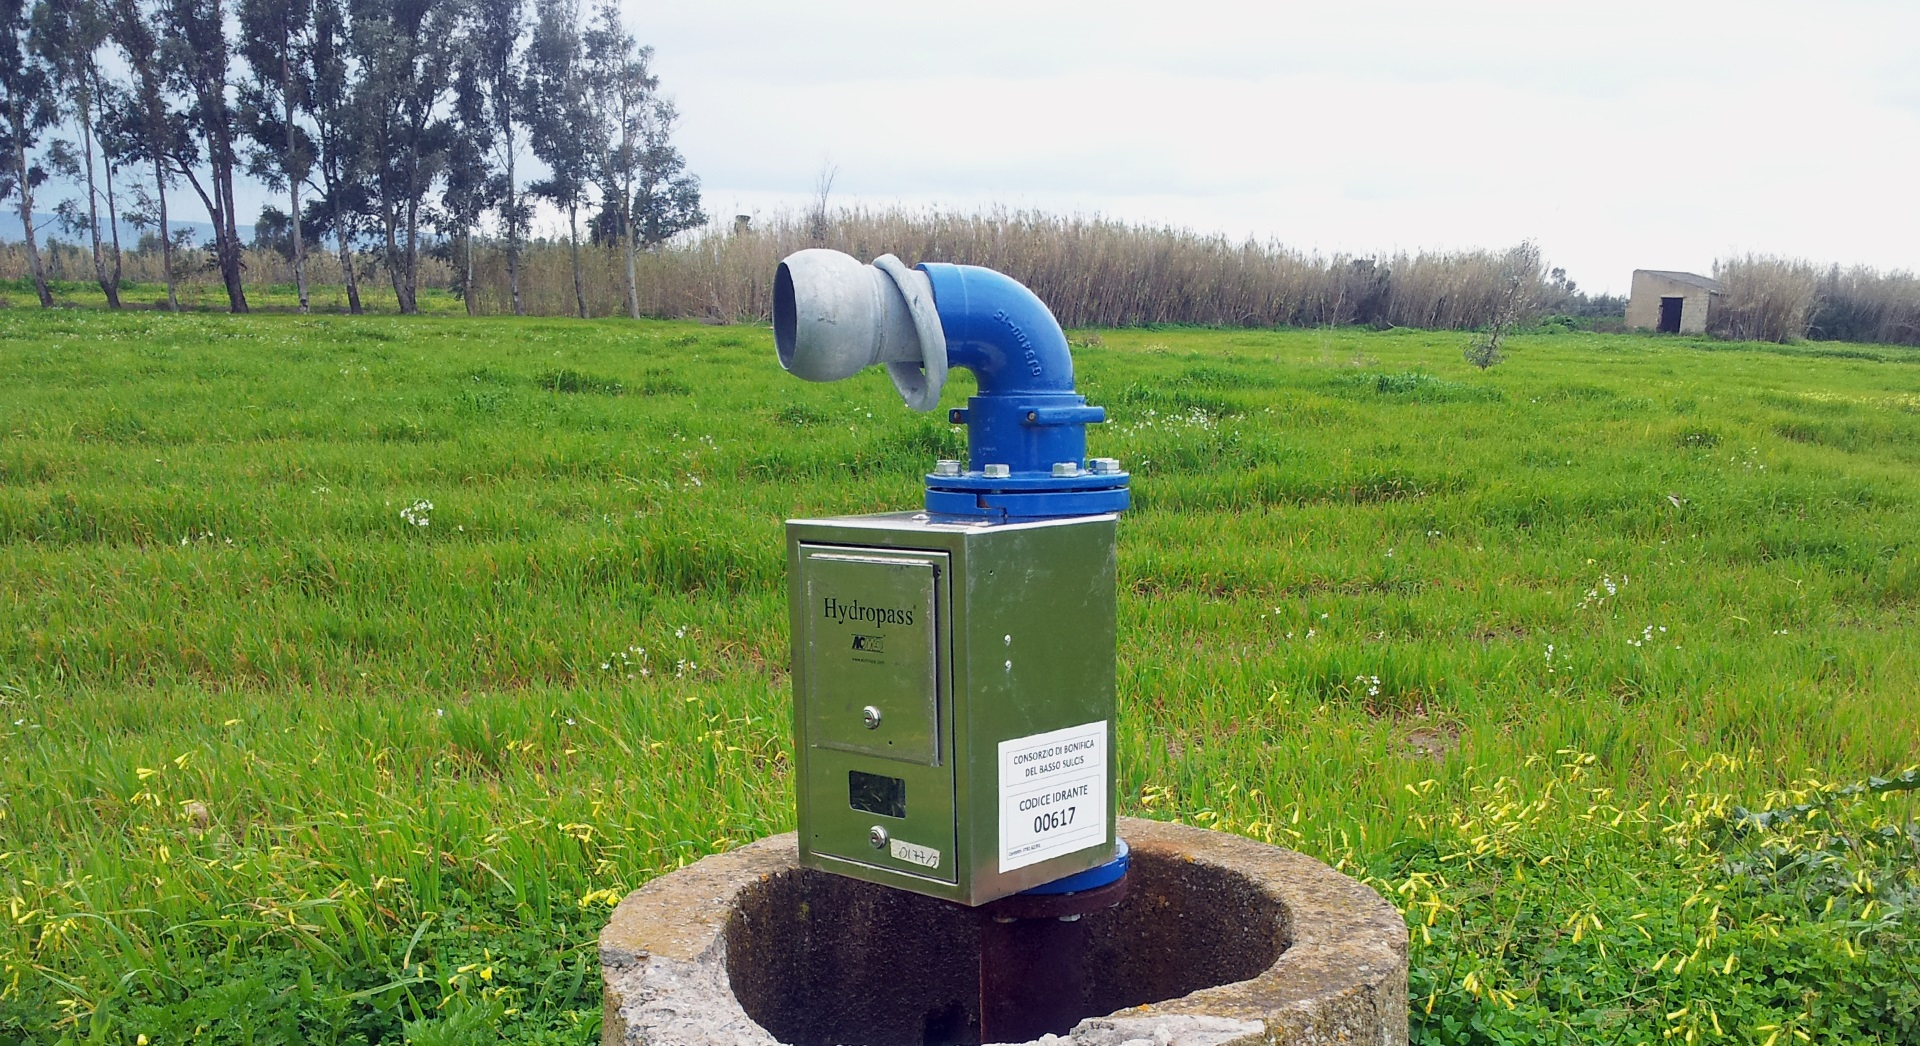 Irrigation hydrant with Hydropass installed in the field